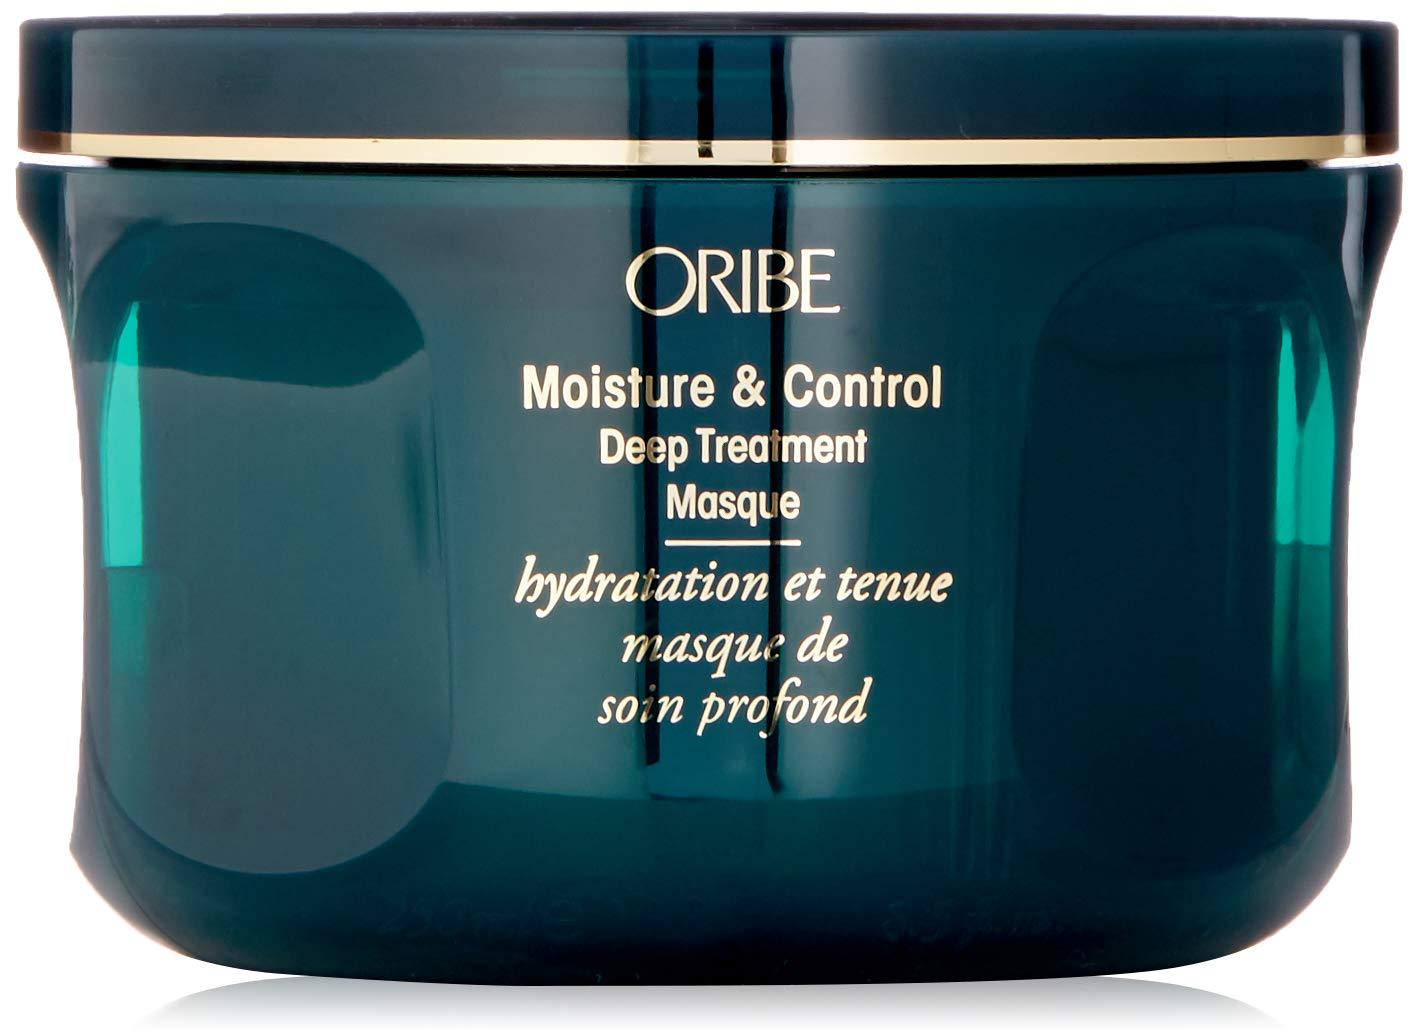 ORIBE Moisture & Control Deep Treatment Masque, 8.5 Fl Oz